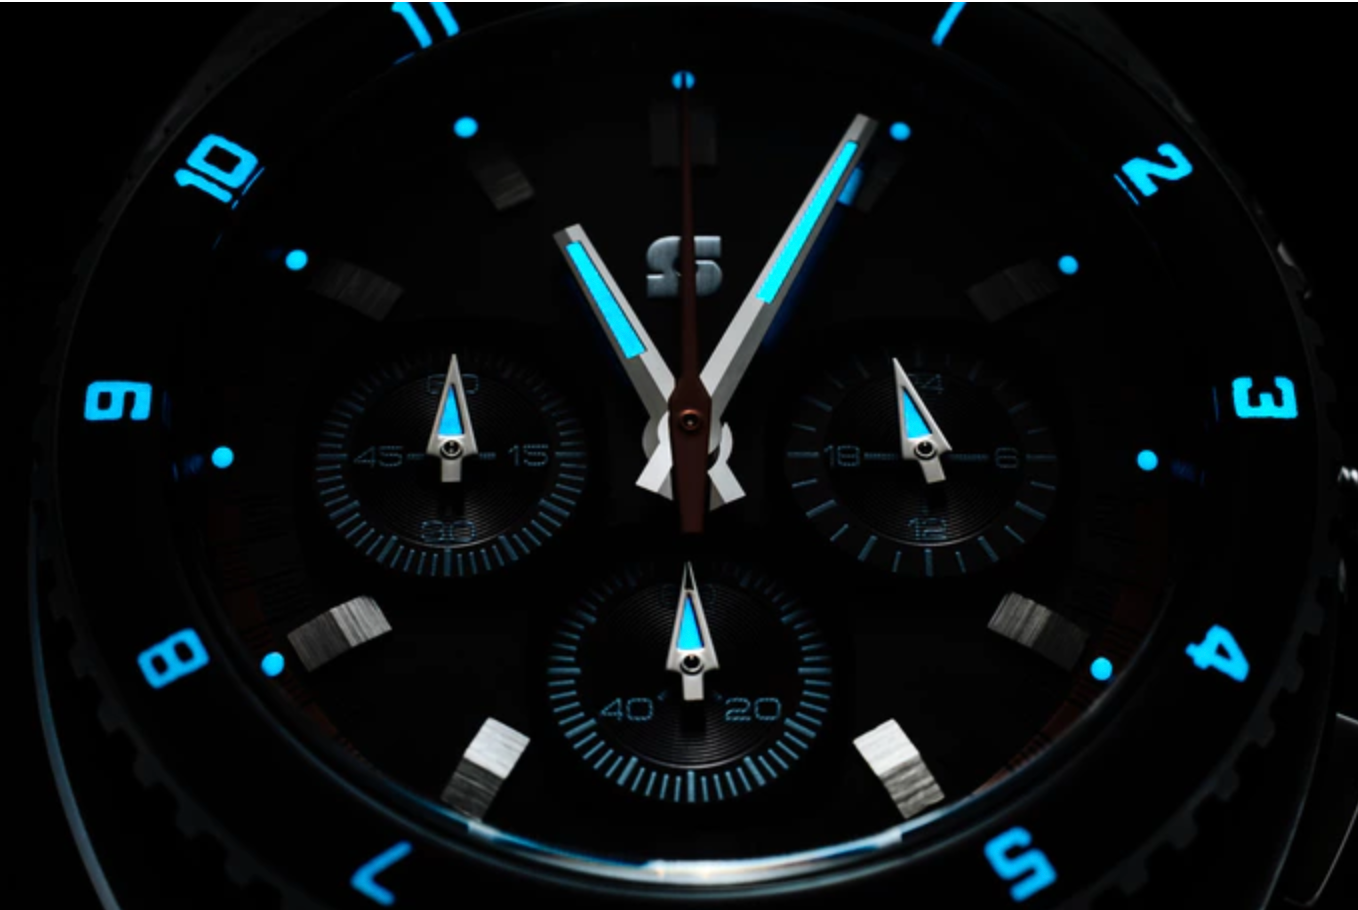 Straton_Legera_watch_-_bold_retro_styling__by_Straton_Watch_Co__—_Kickstarter-2.png